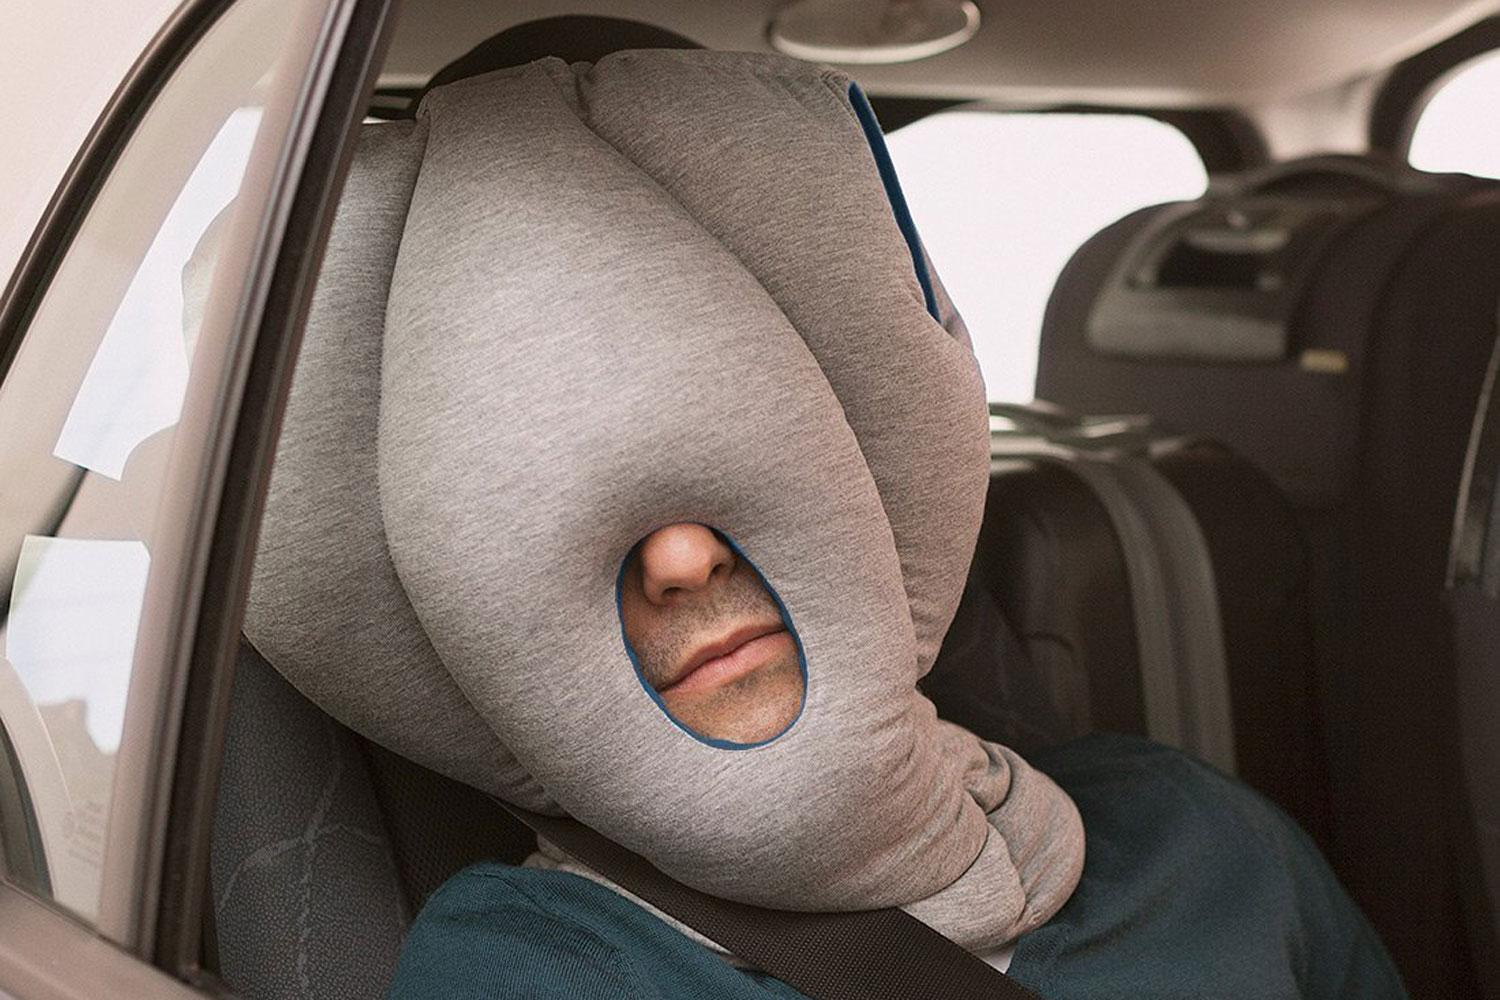 ostrich inspired pillow for napping